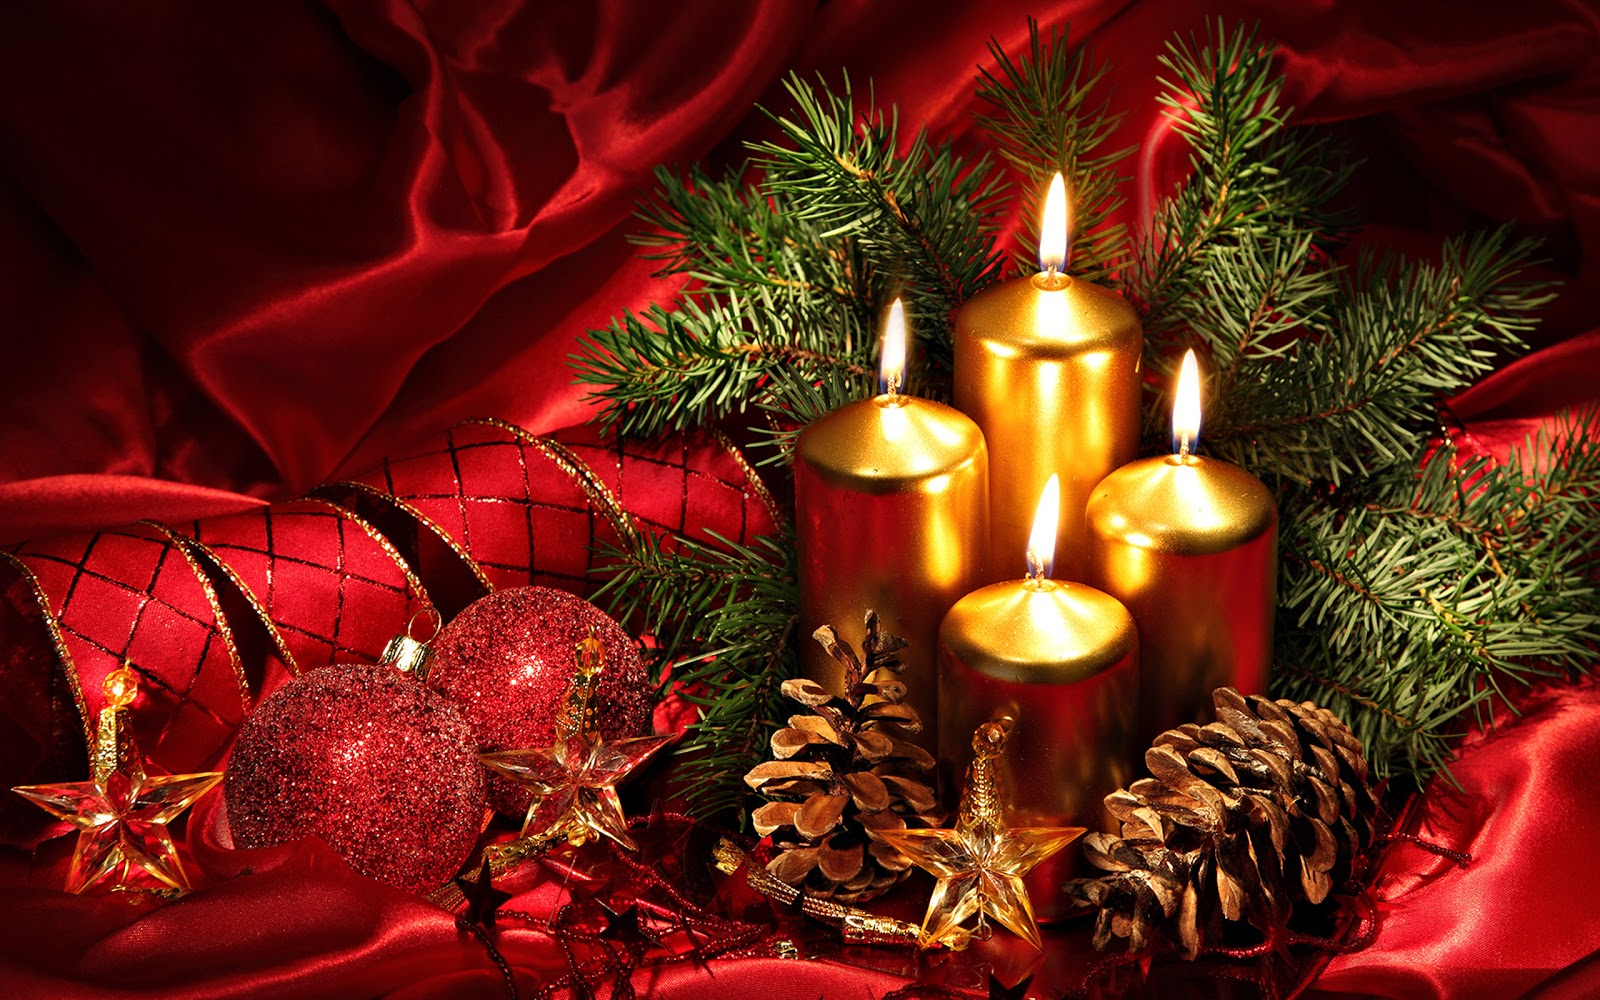 Christmas Landscapes Wallpaper Candles